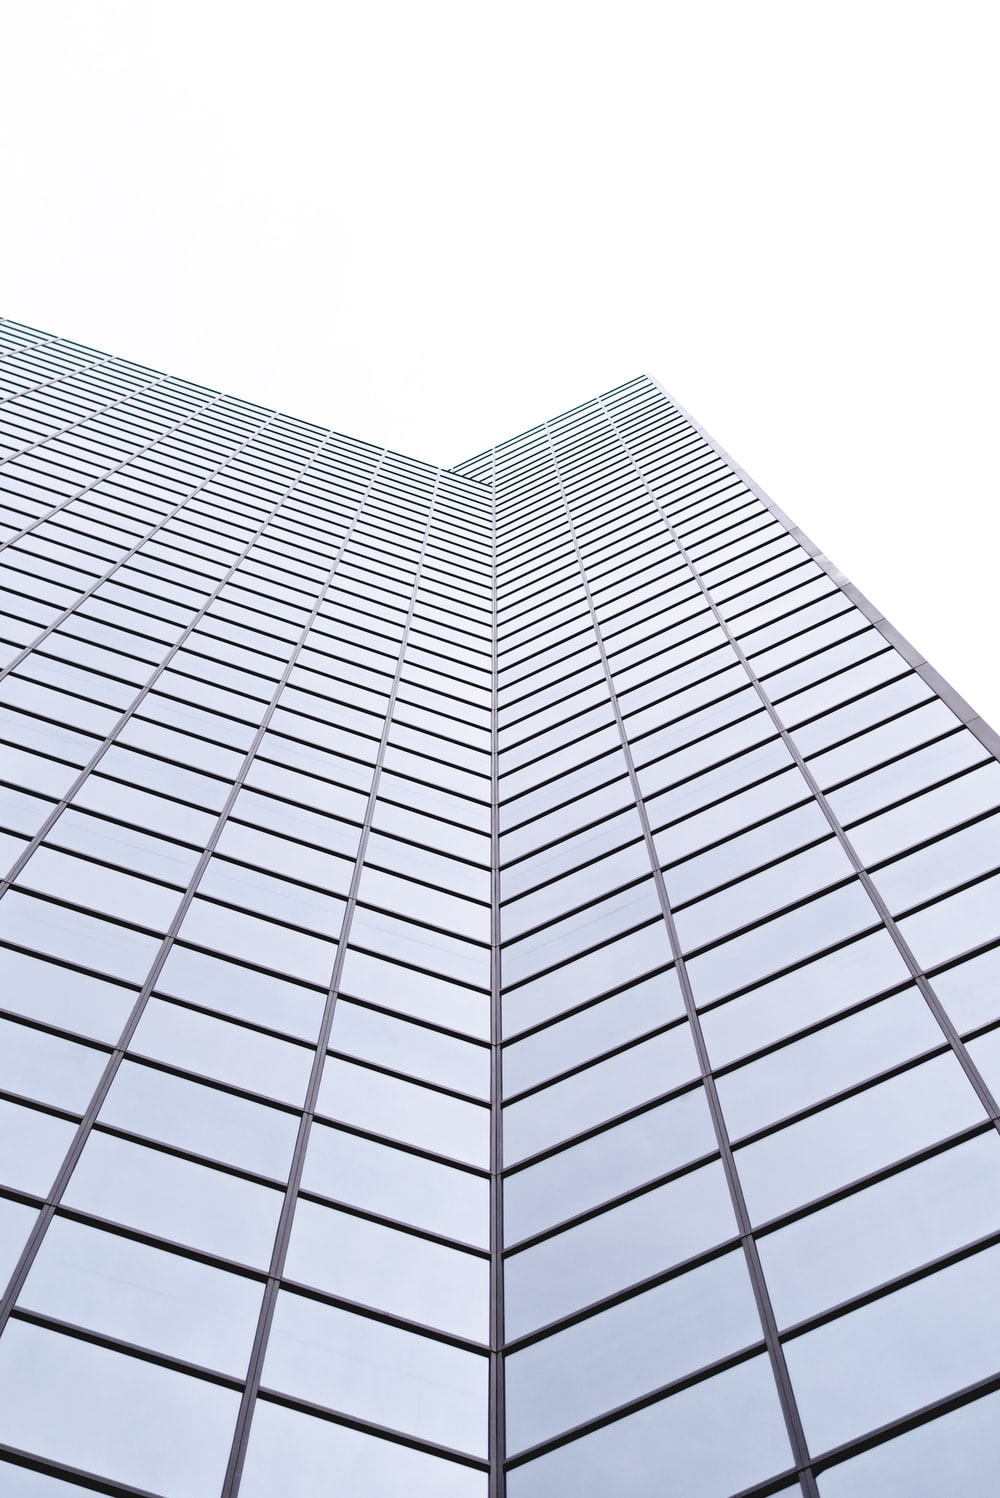 low-angle photography of glass high rise building